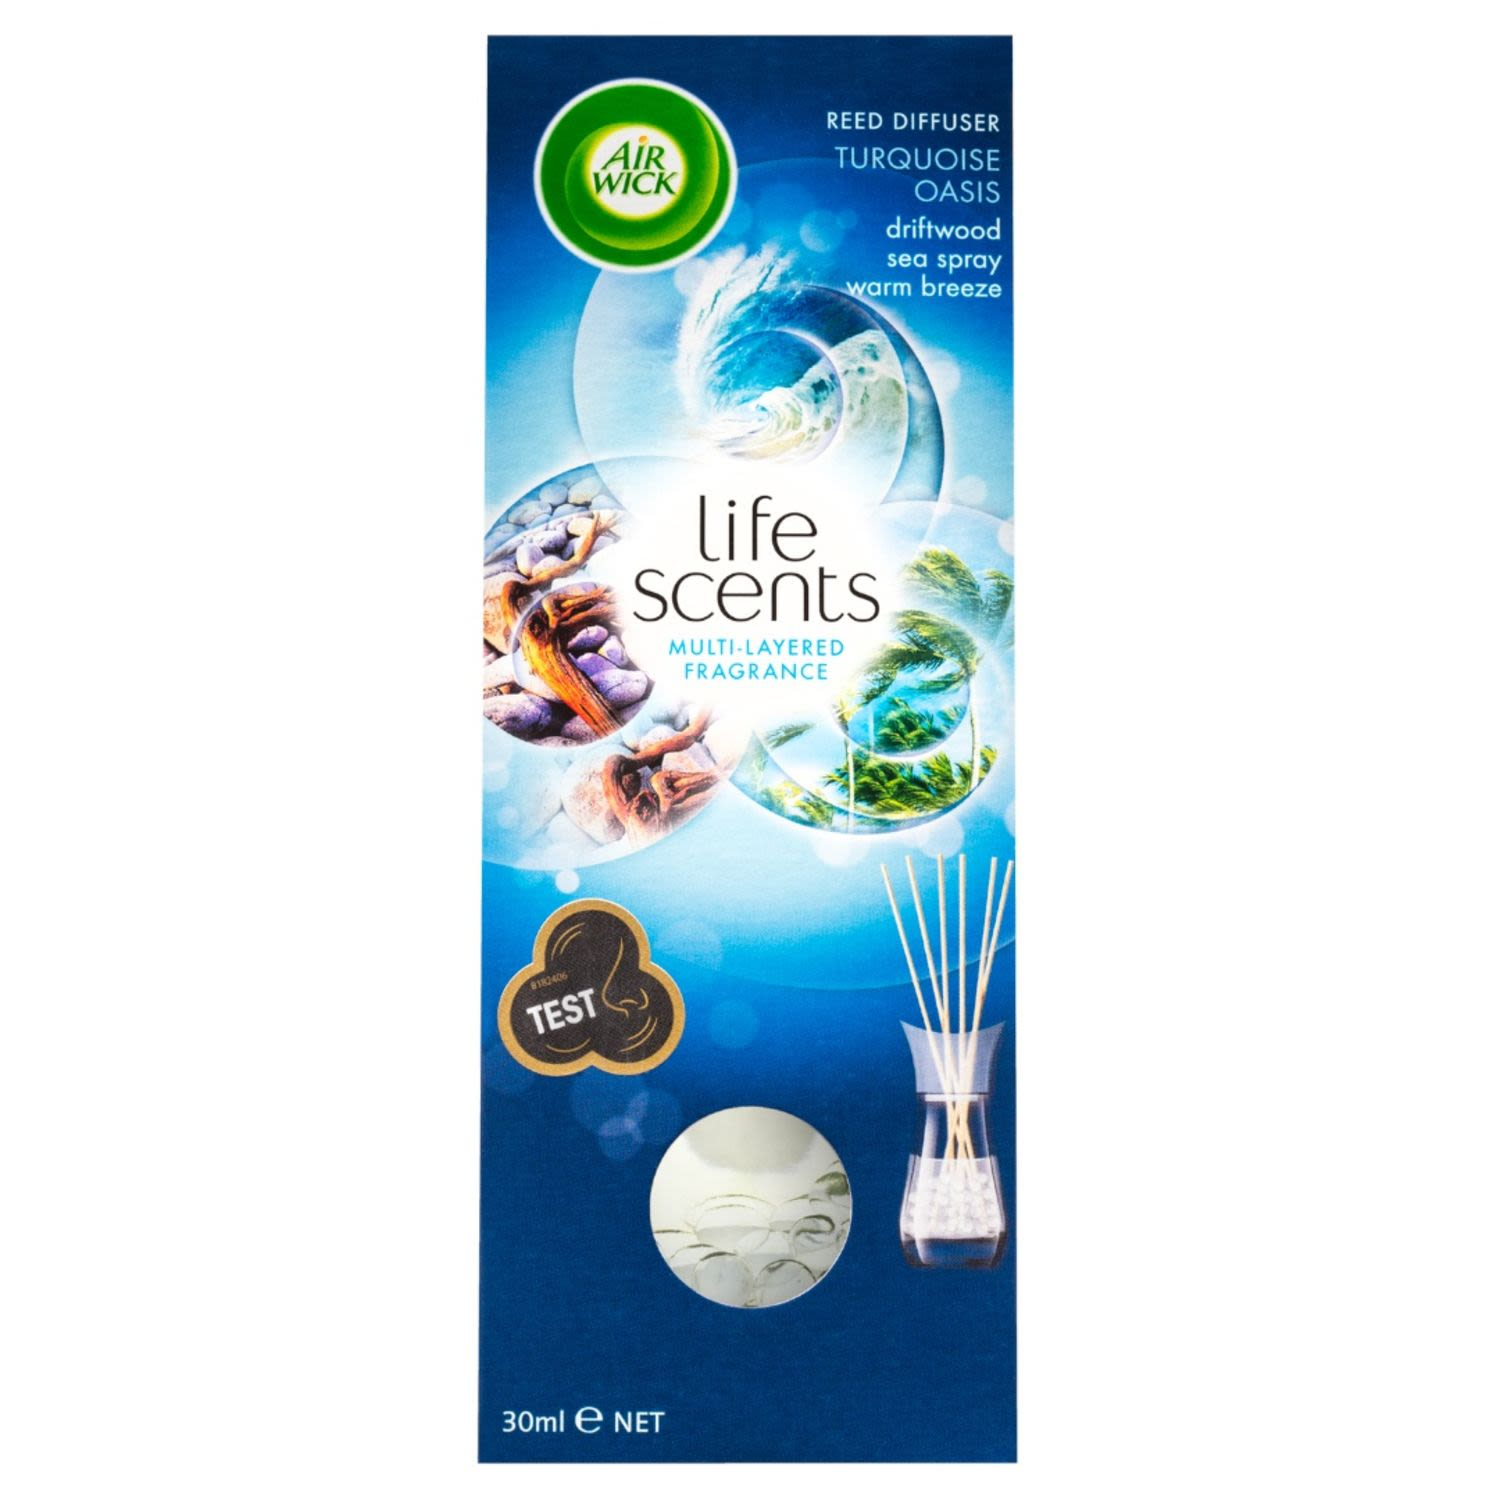 Air Wick Life Scent Reed Turquoise Oasis, 30 Millilitre